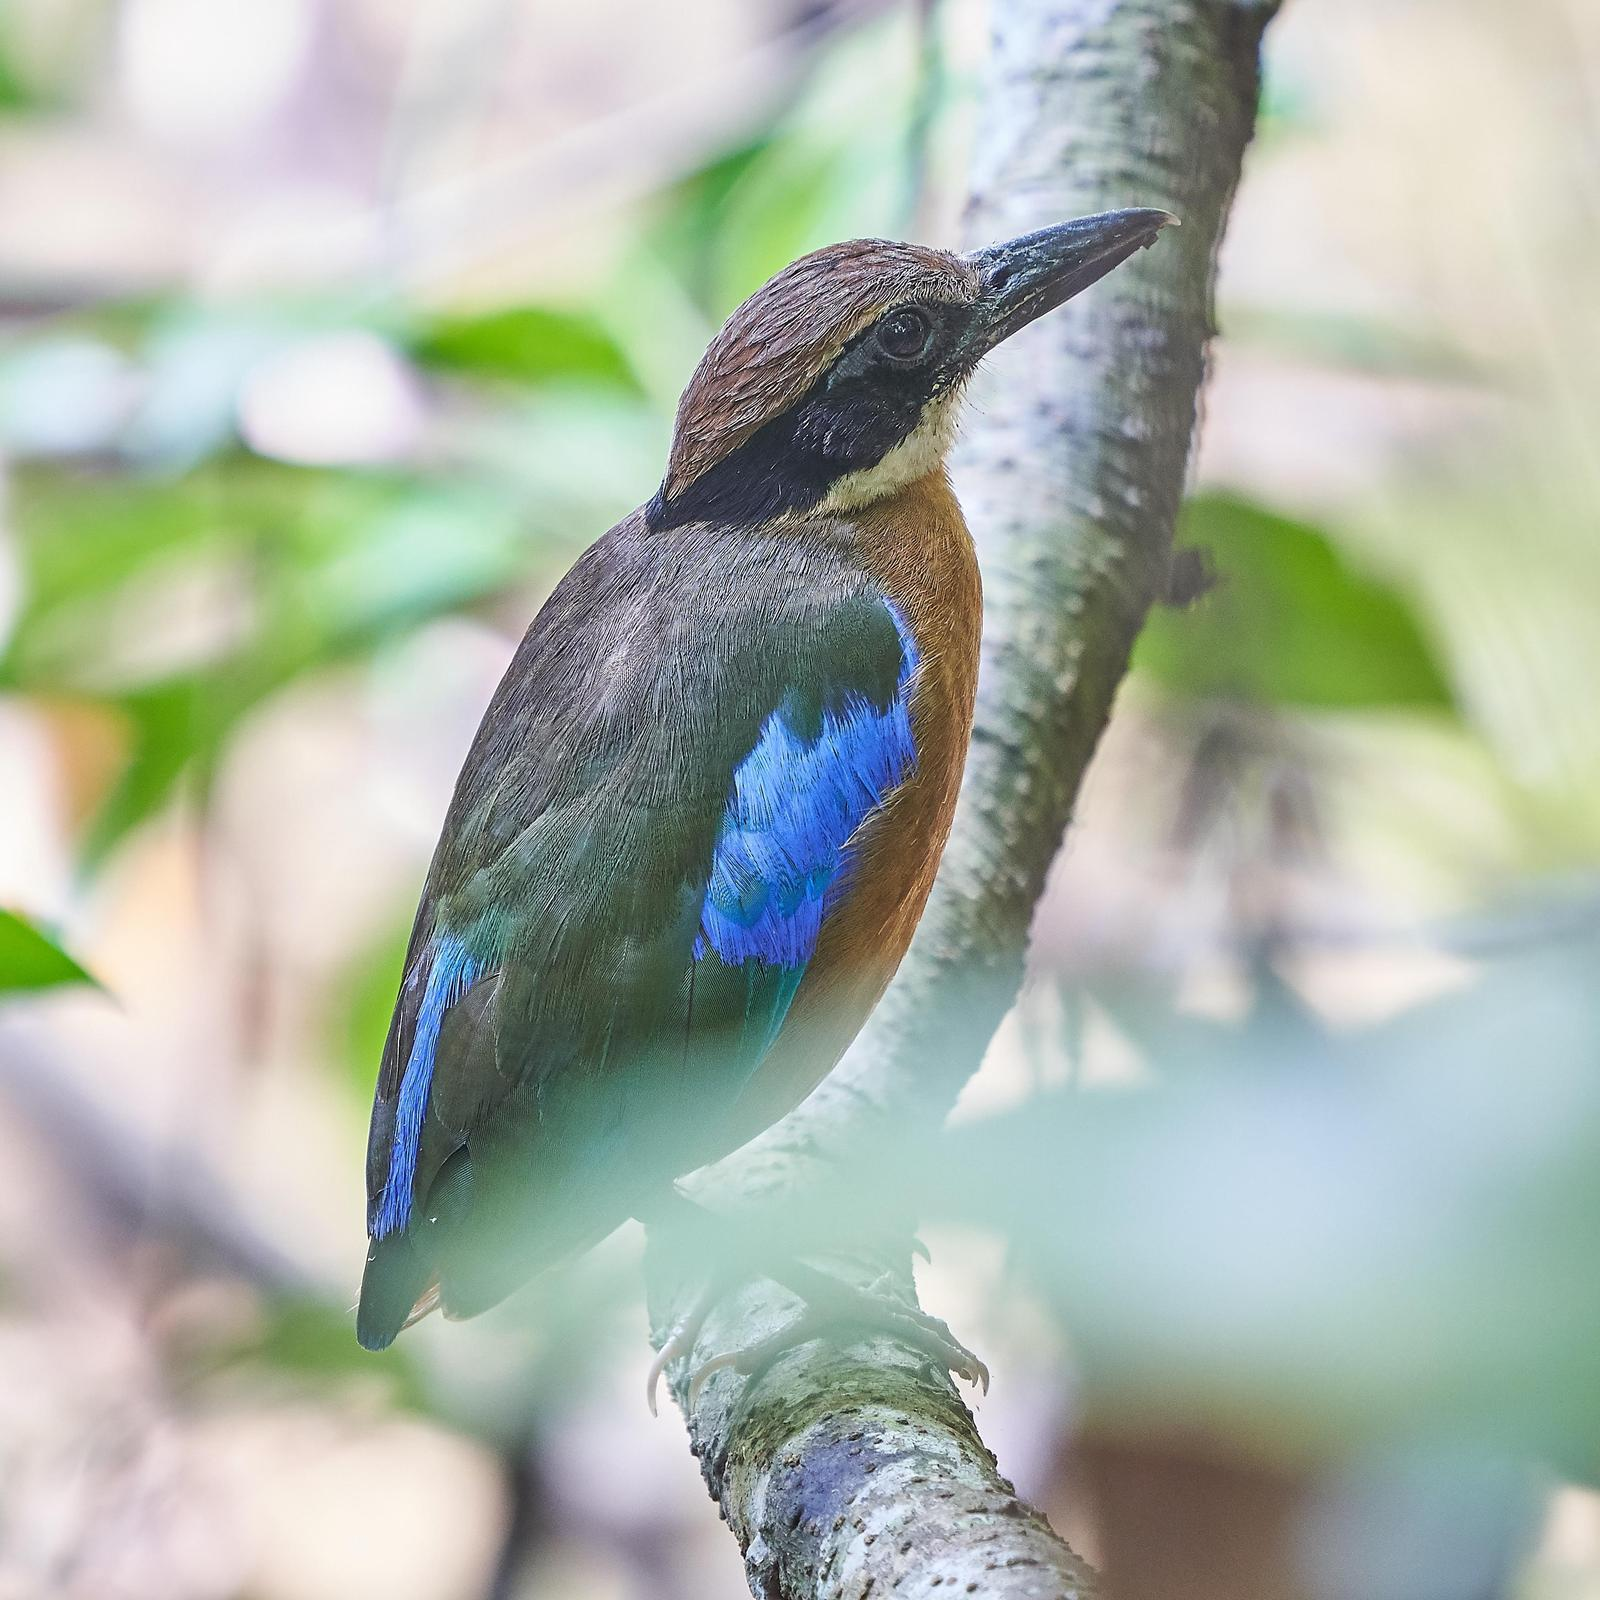 Mangrove Pitta Photo by Steven Cheong